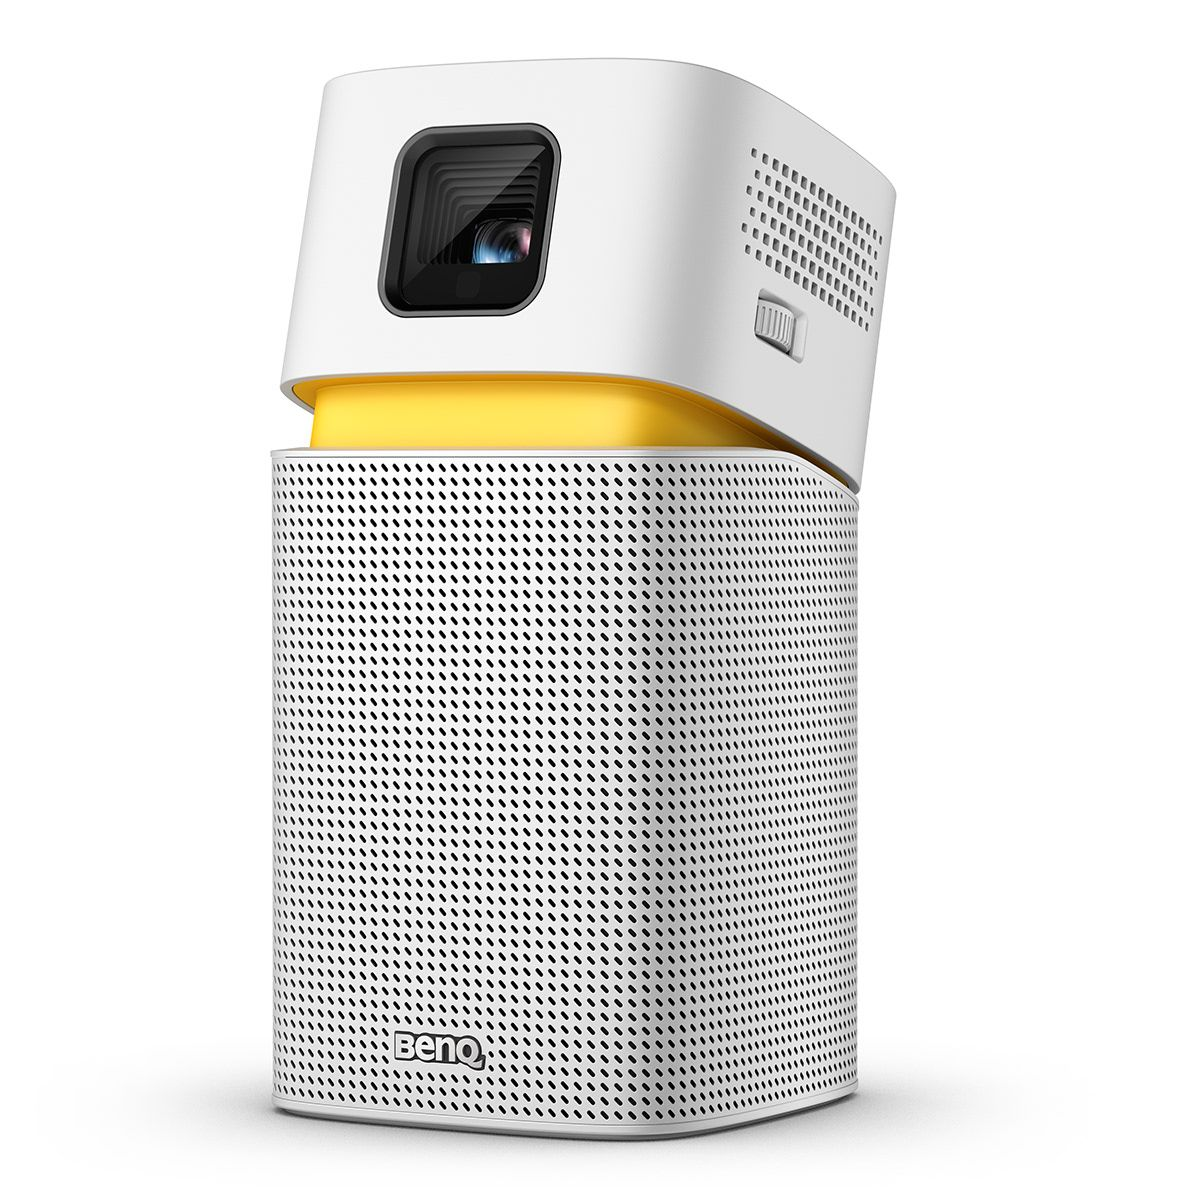 Behance 为您呈瞰 in 2020 portable projector projector